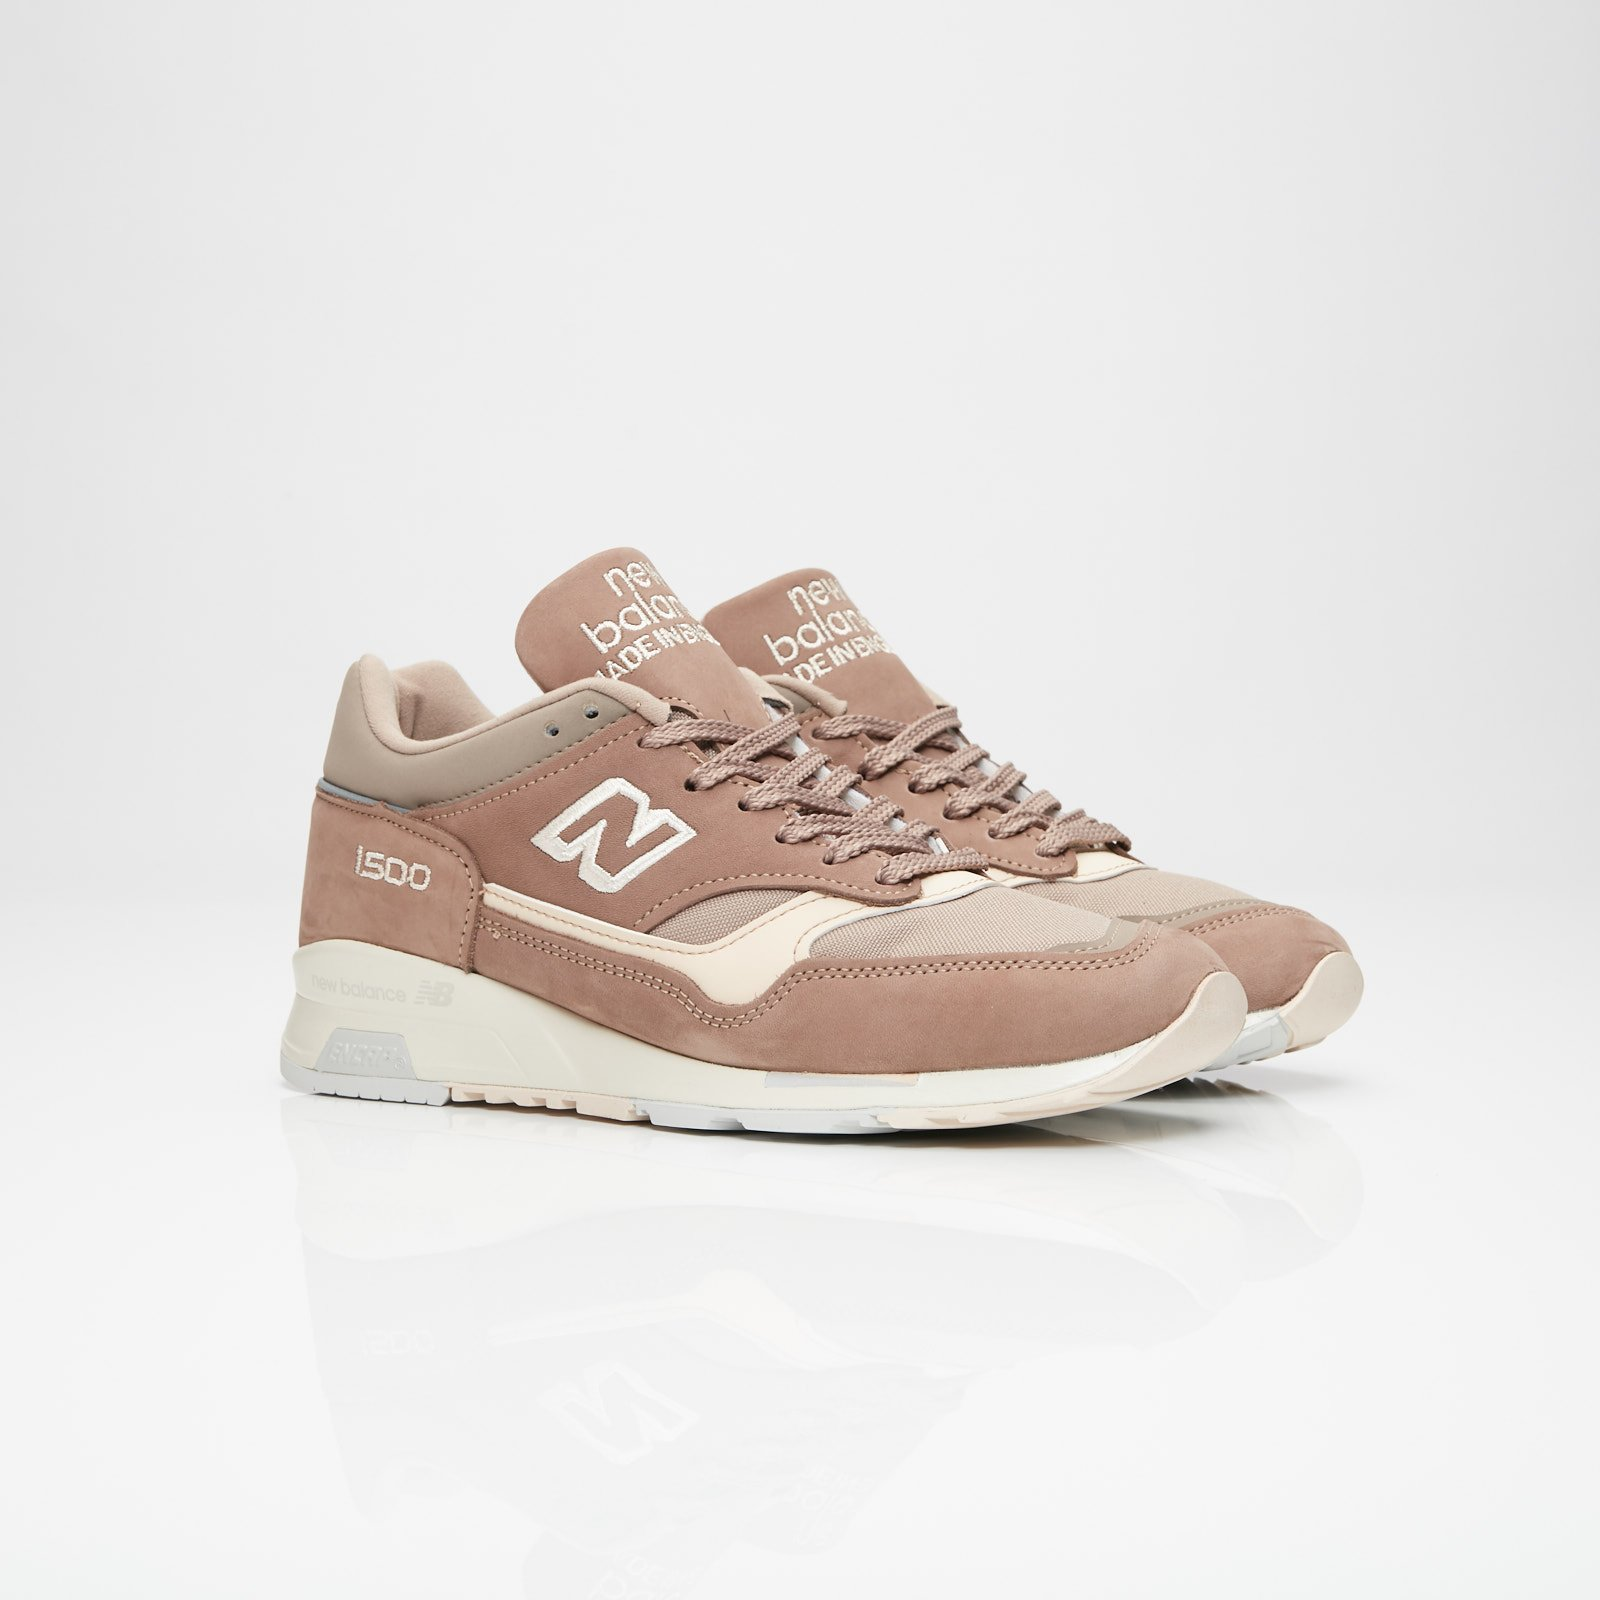 classic fit a972a 241e1 New Balance 1500 - W1500sss - Sneakersnstuff | sneakers ...